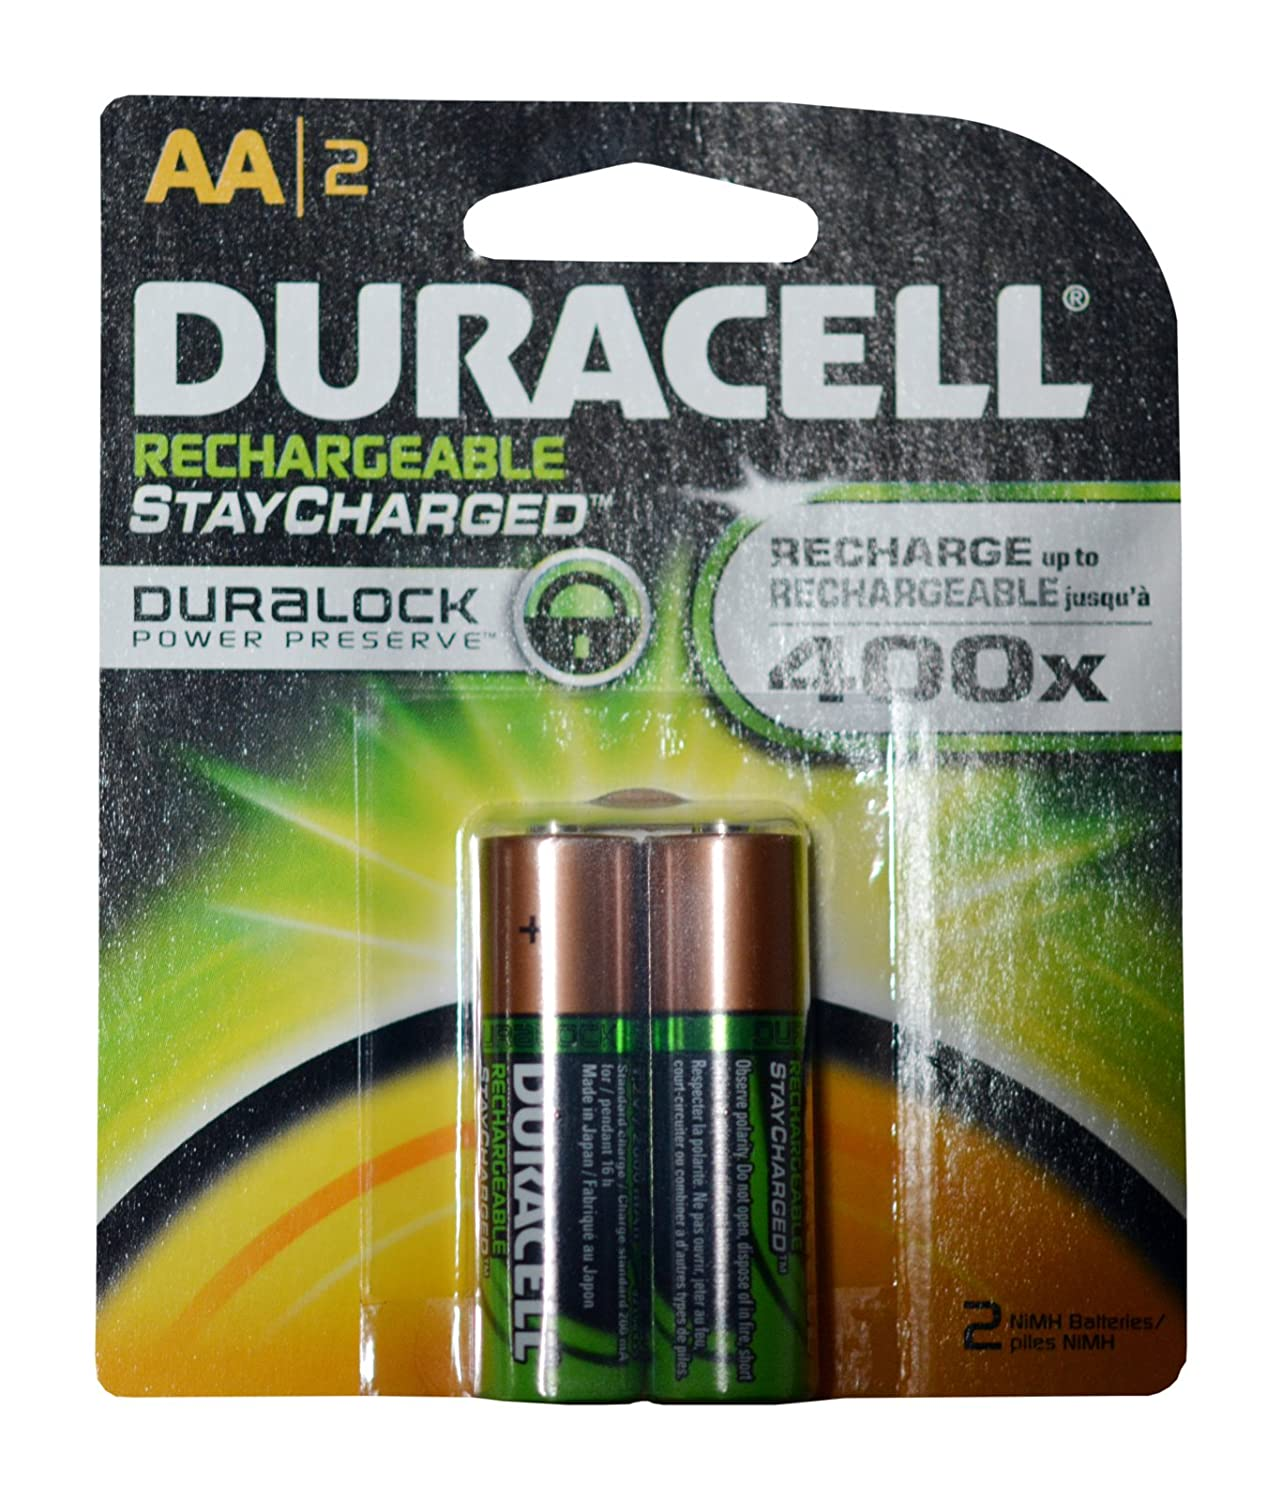 4c88eed629c Amazon.com  Duracell Rechargeable AA Batteries 16 Count (Packs of 2)   Health   Personal Care